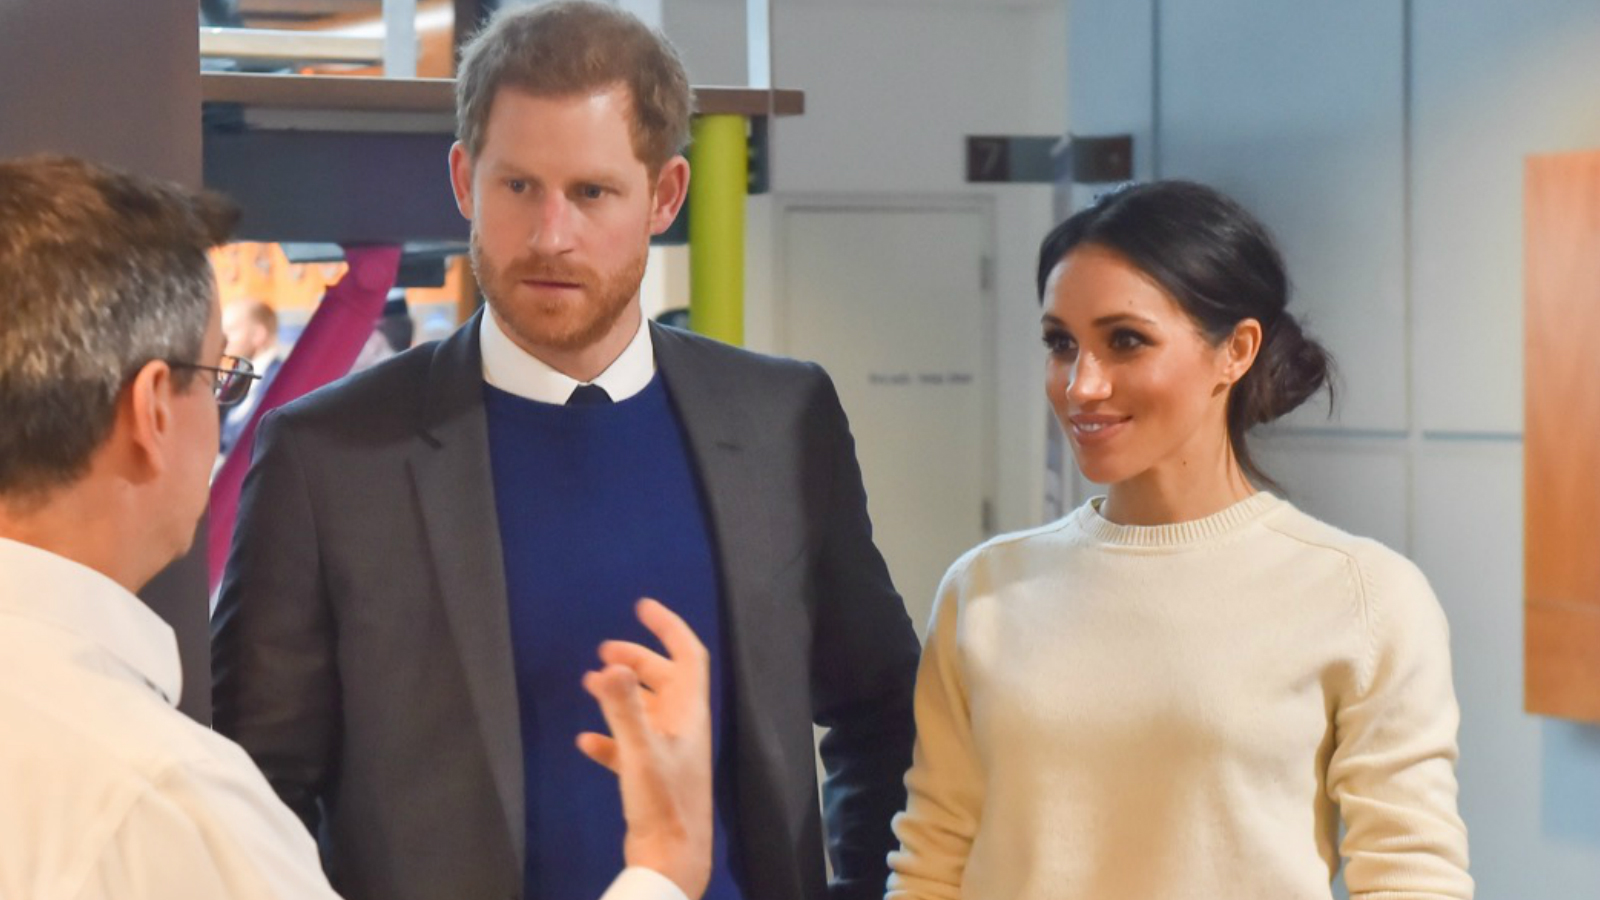 Prince Harry and Meghan Markle talking to a man at a science clinic on a Royal visit